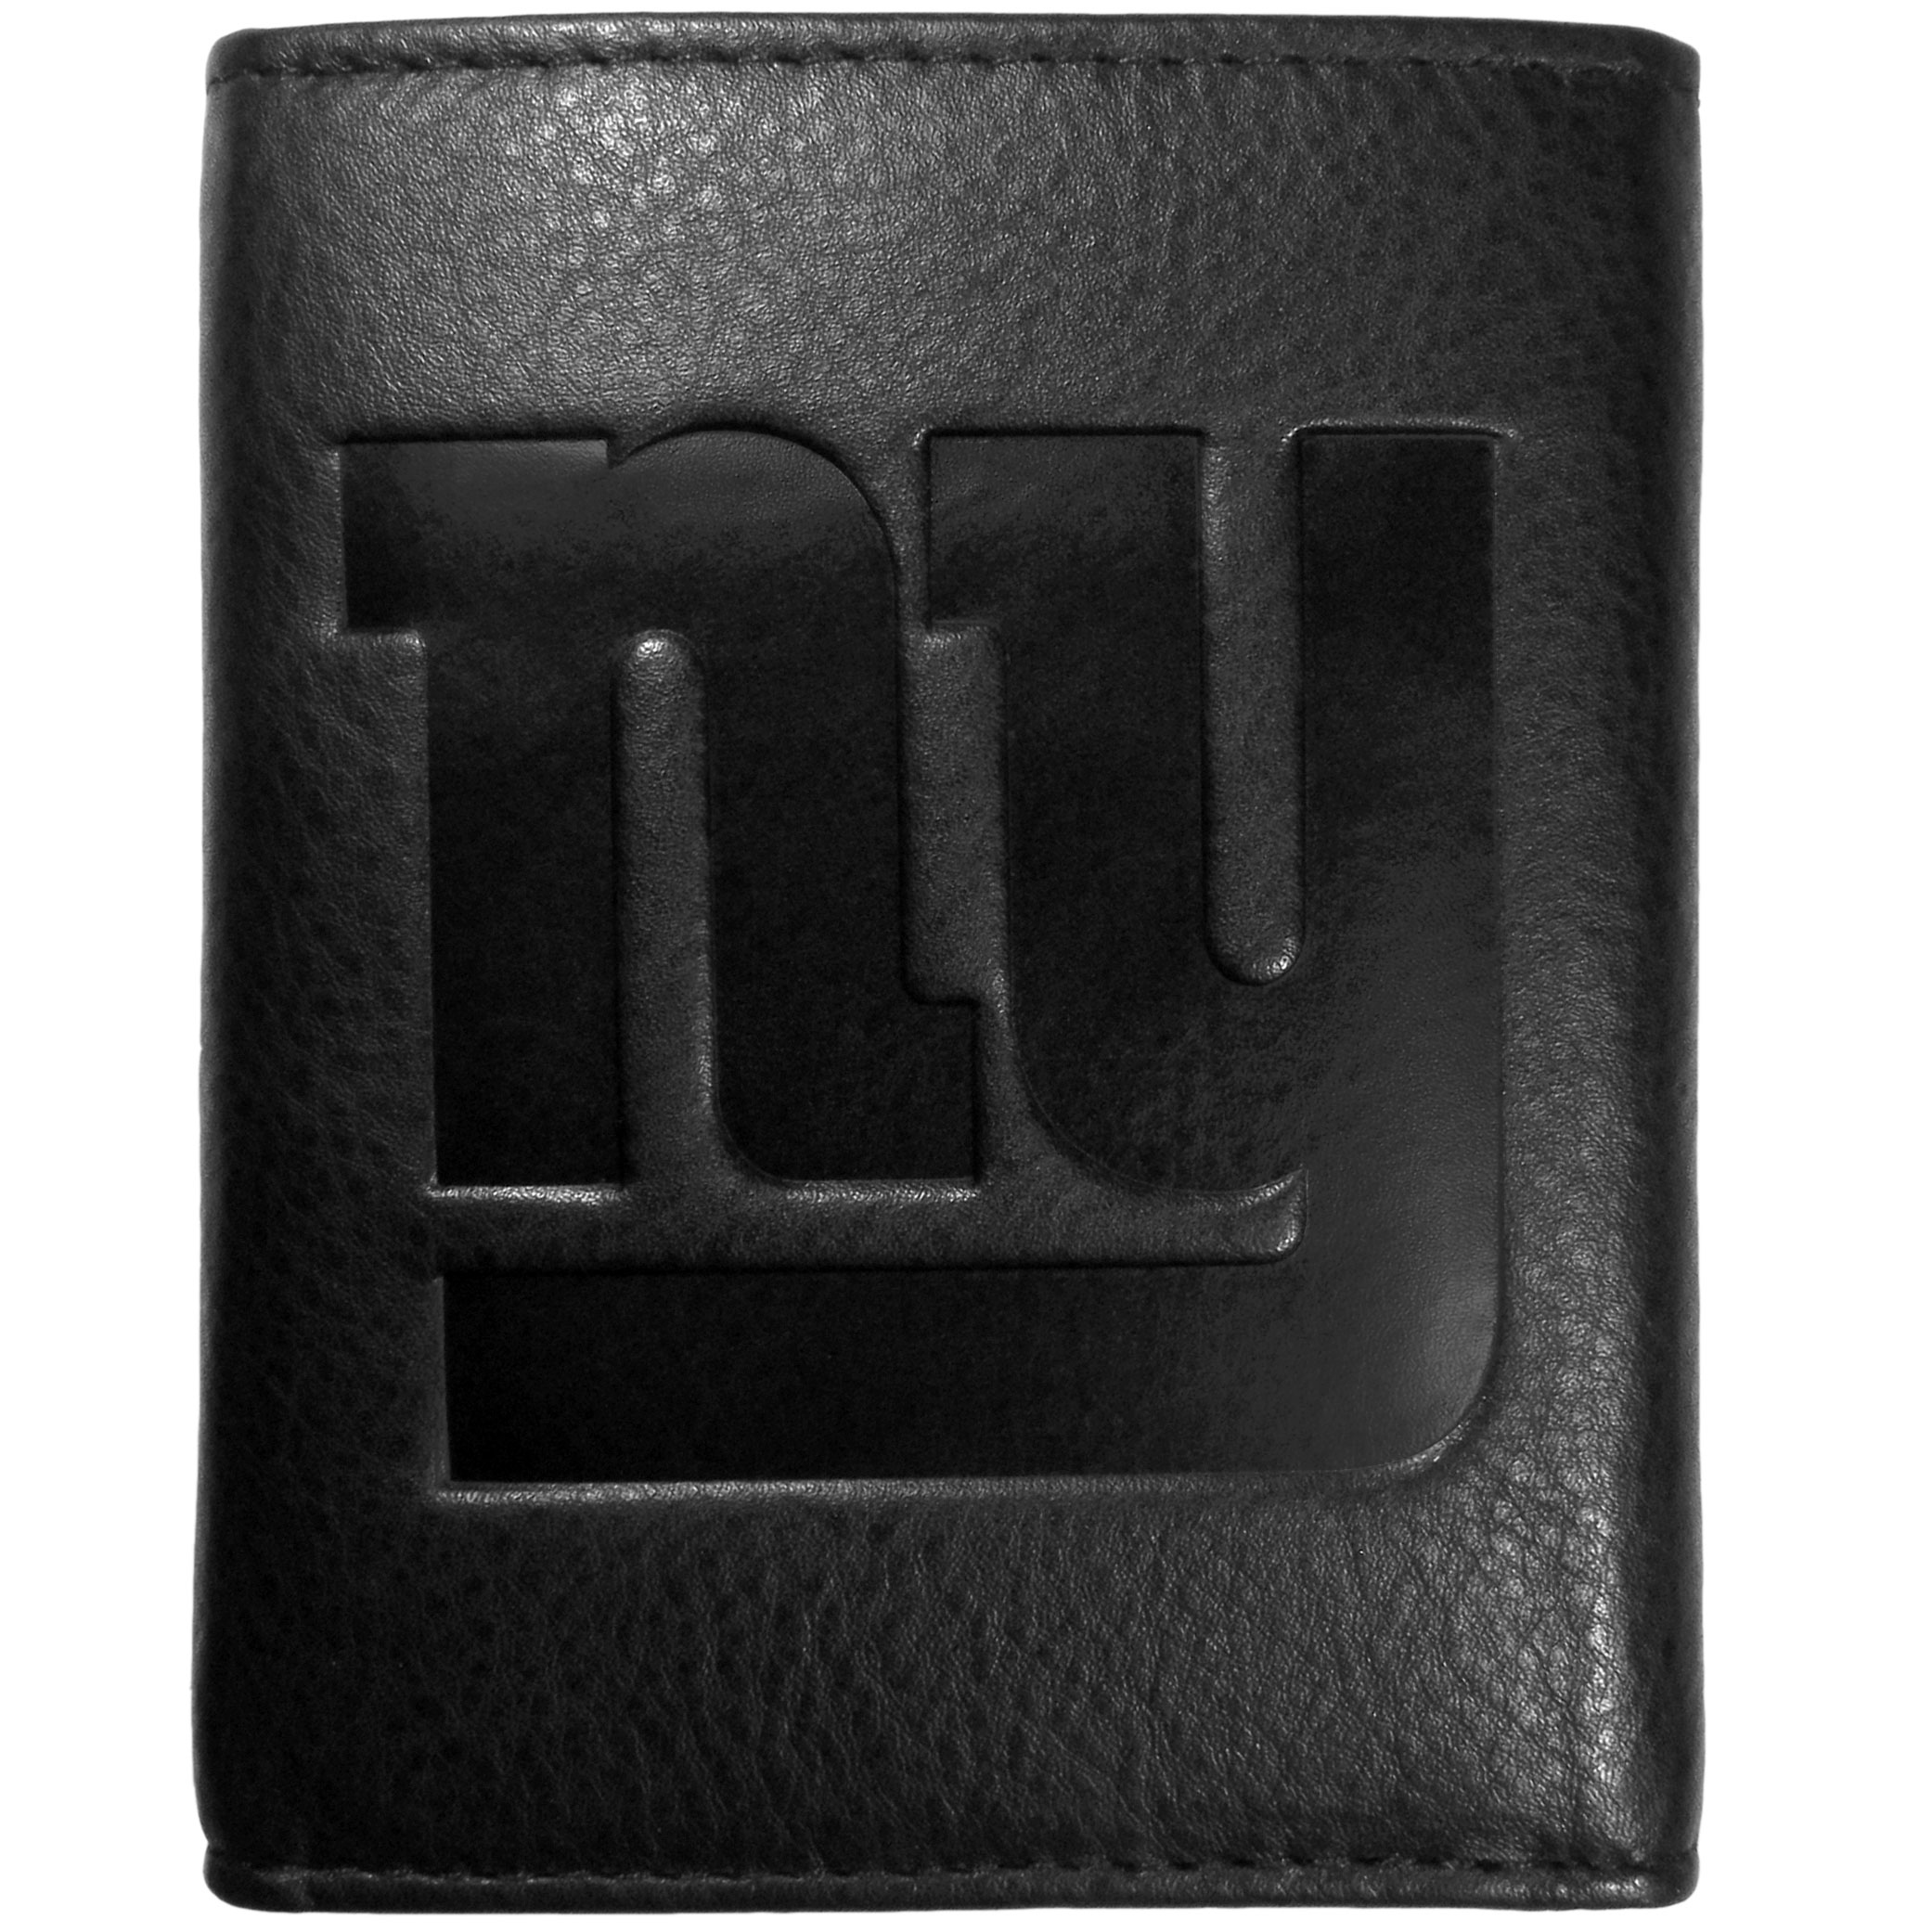 New York Giants Embossed Leather Tri-fold Wallet - This stylish leather wallet is made of high quality leather with a supple feel and classic look. The front of the tri-fold style wallet has a deeply embossed New York Giants logo. The billfold is packed with features that will allow to keep organized, lots of credit card slots, windowed ID slot, large pockets for bills and a removable sleeve with extra slots for even more storage. This is a must-have men's fashion accessory that would make any fan very proud to own.